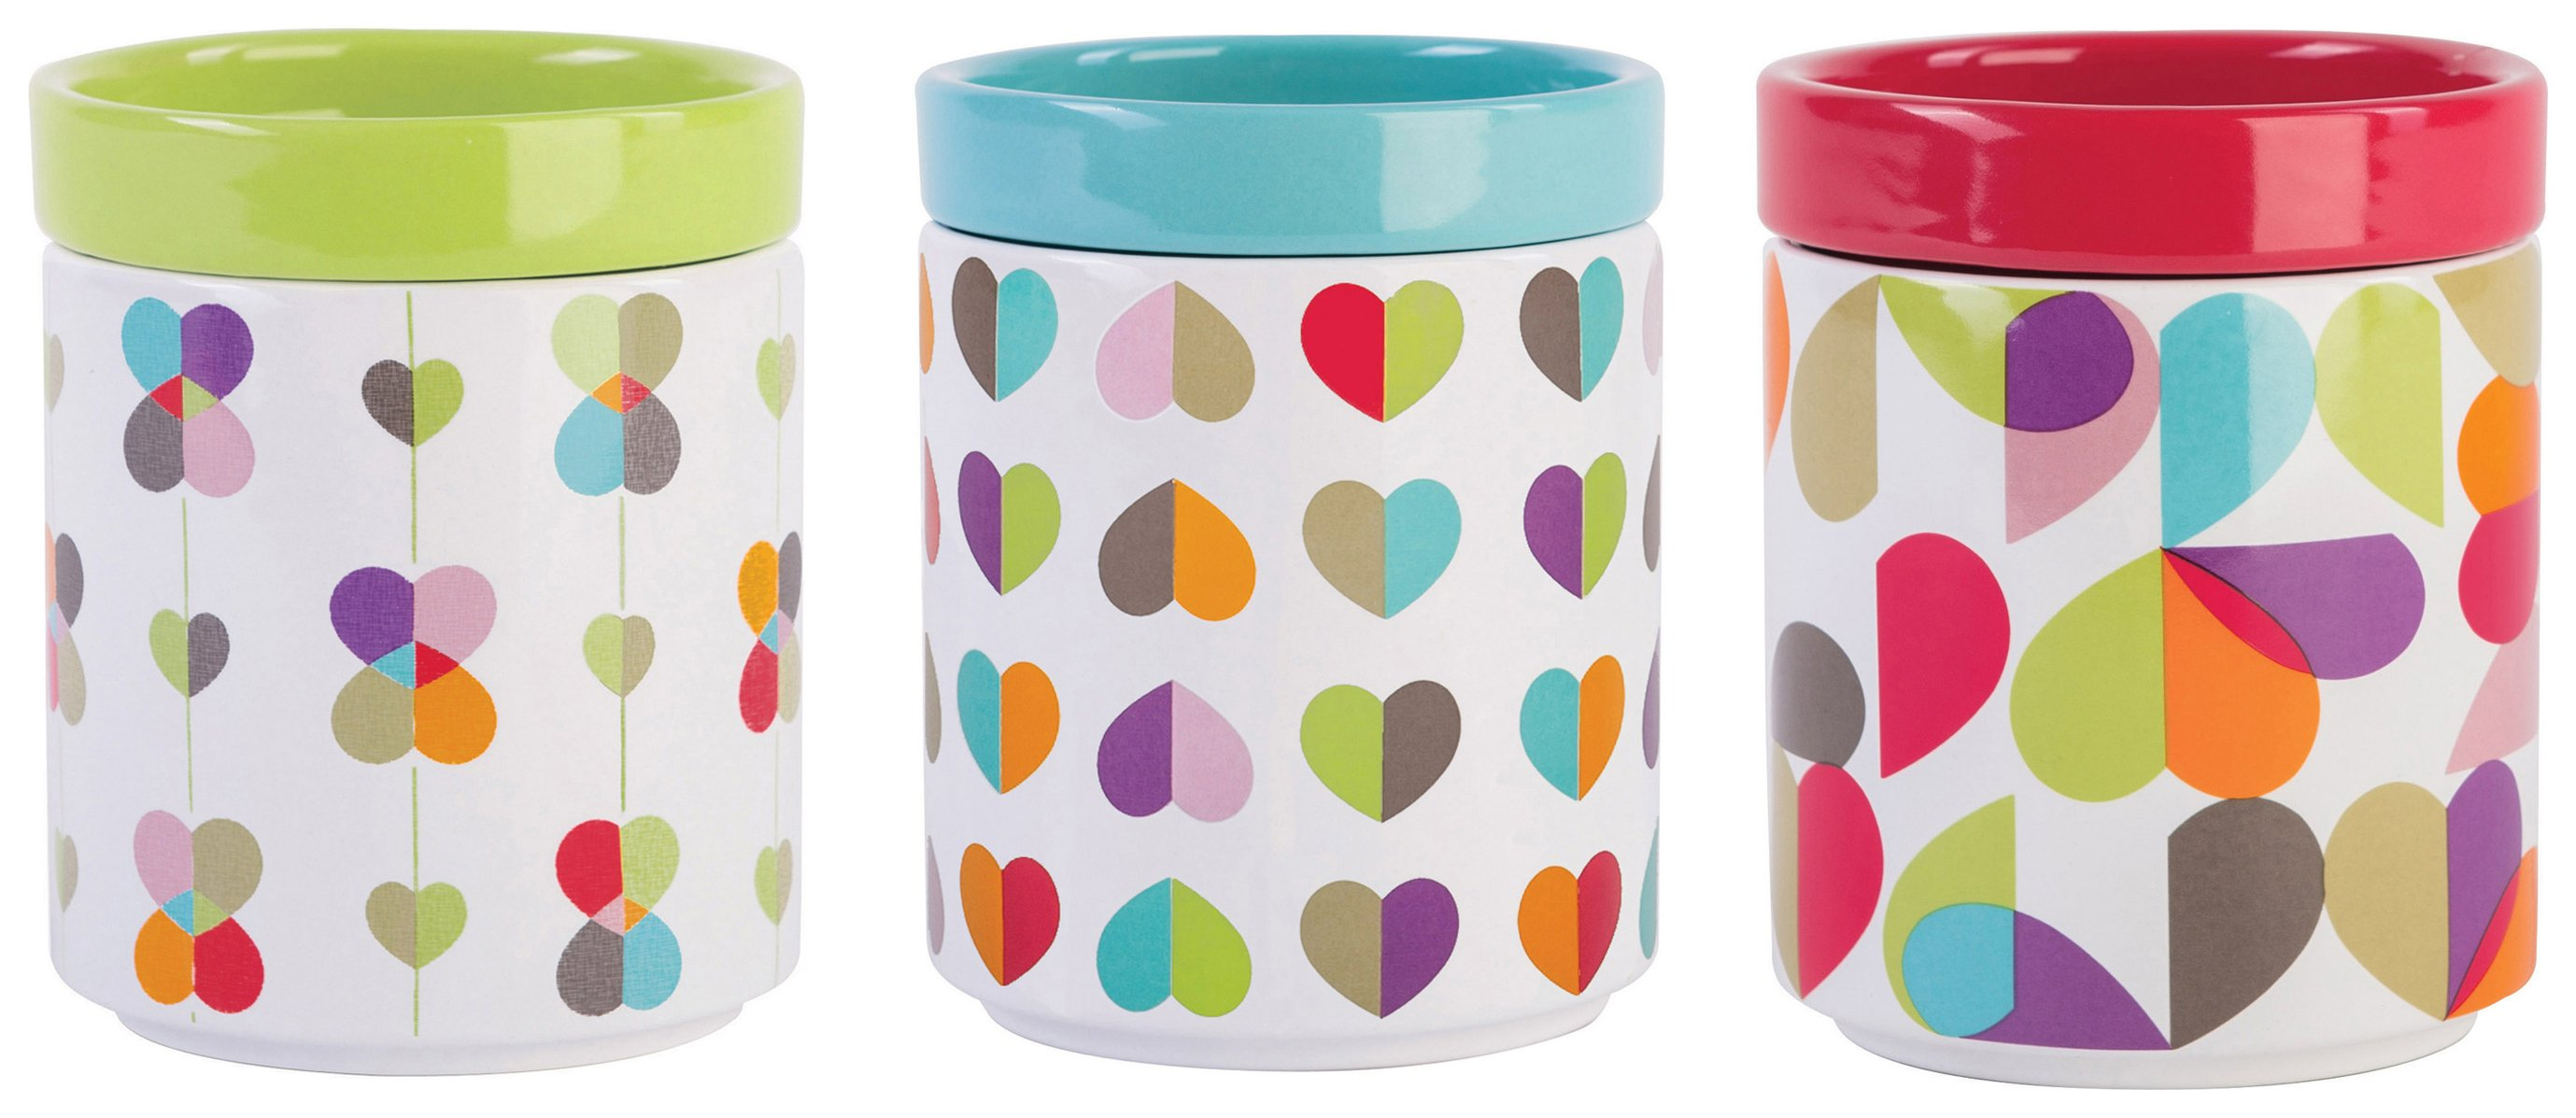 Image of Beau and Elliot Set of 3 Stackable Storage Jars.